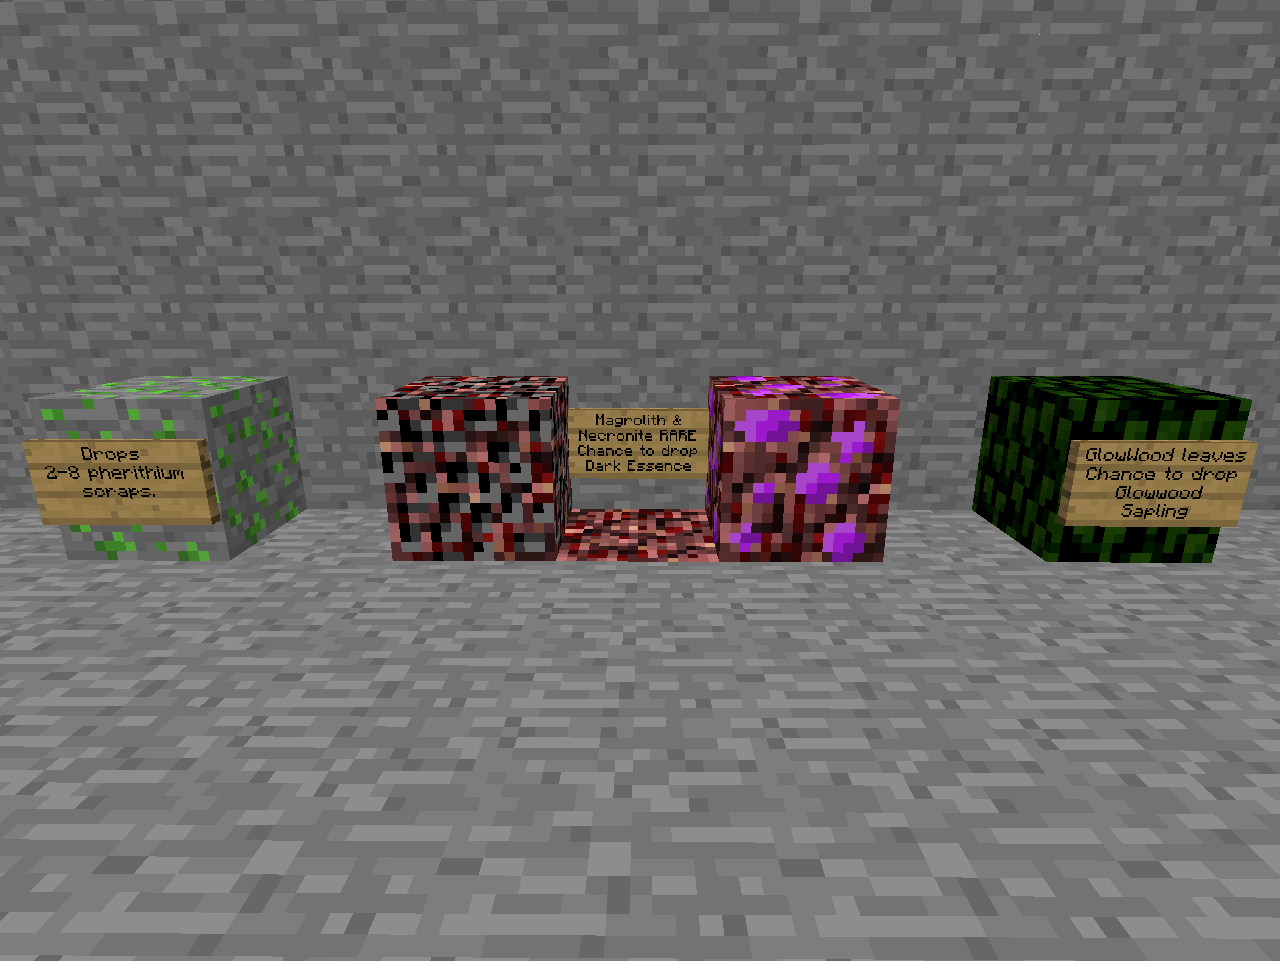 600b3  m5zc Rare Ores Screenshots